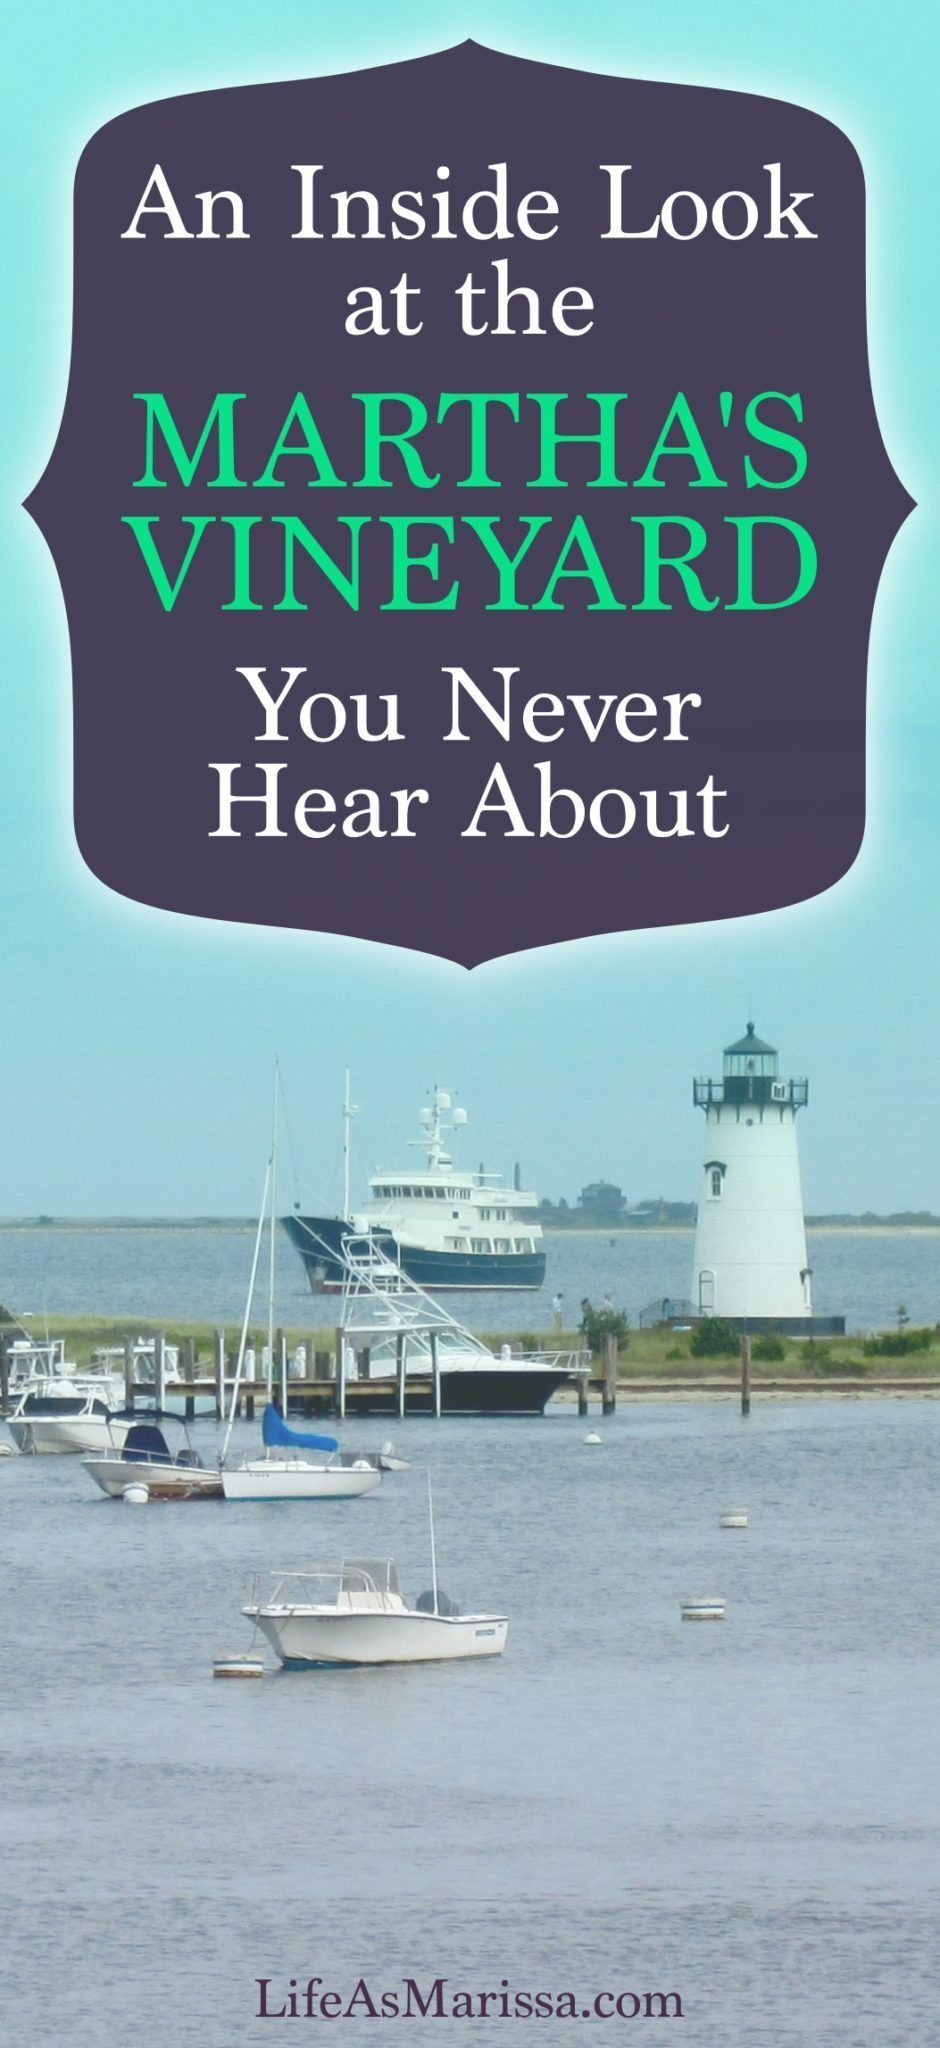 how to get to martha's vineyard from rhode island